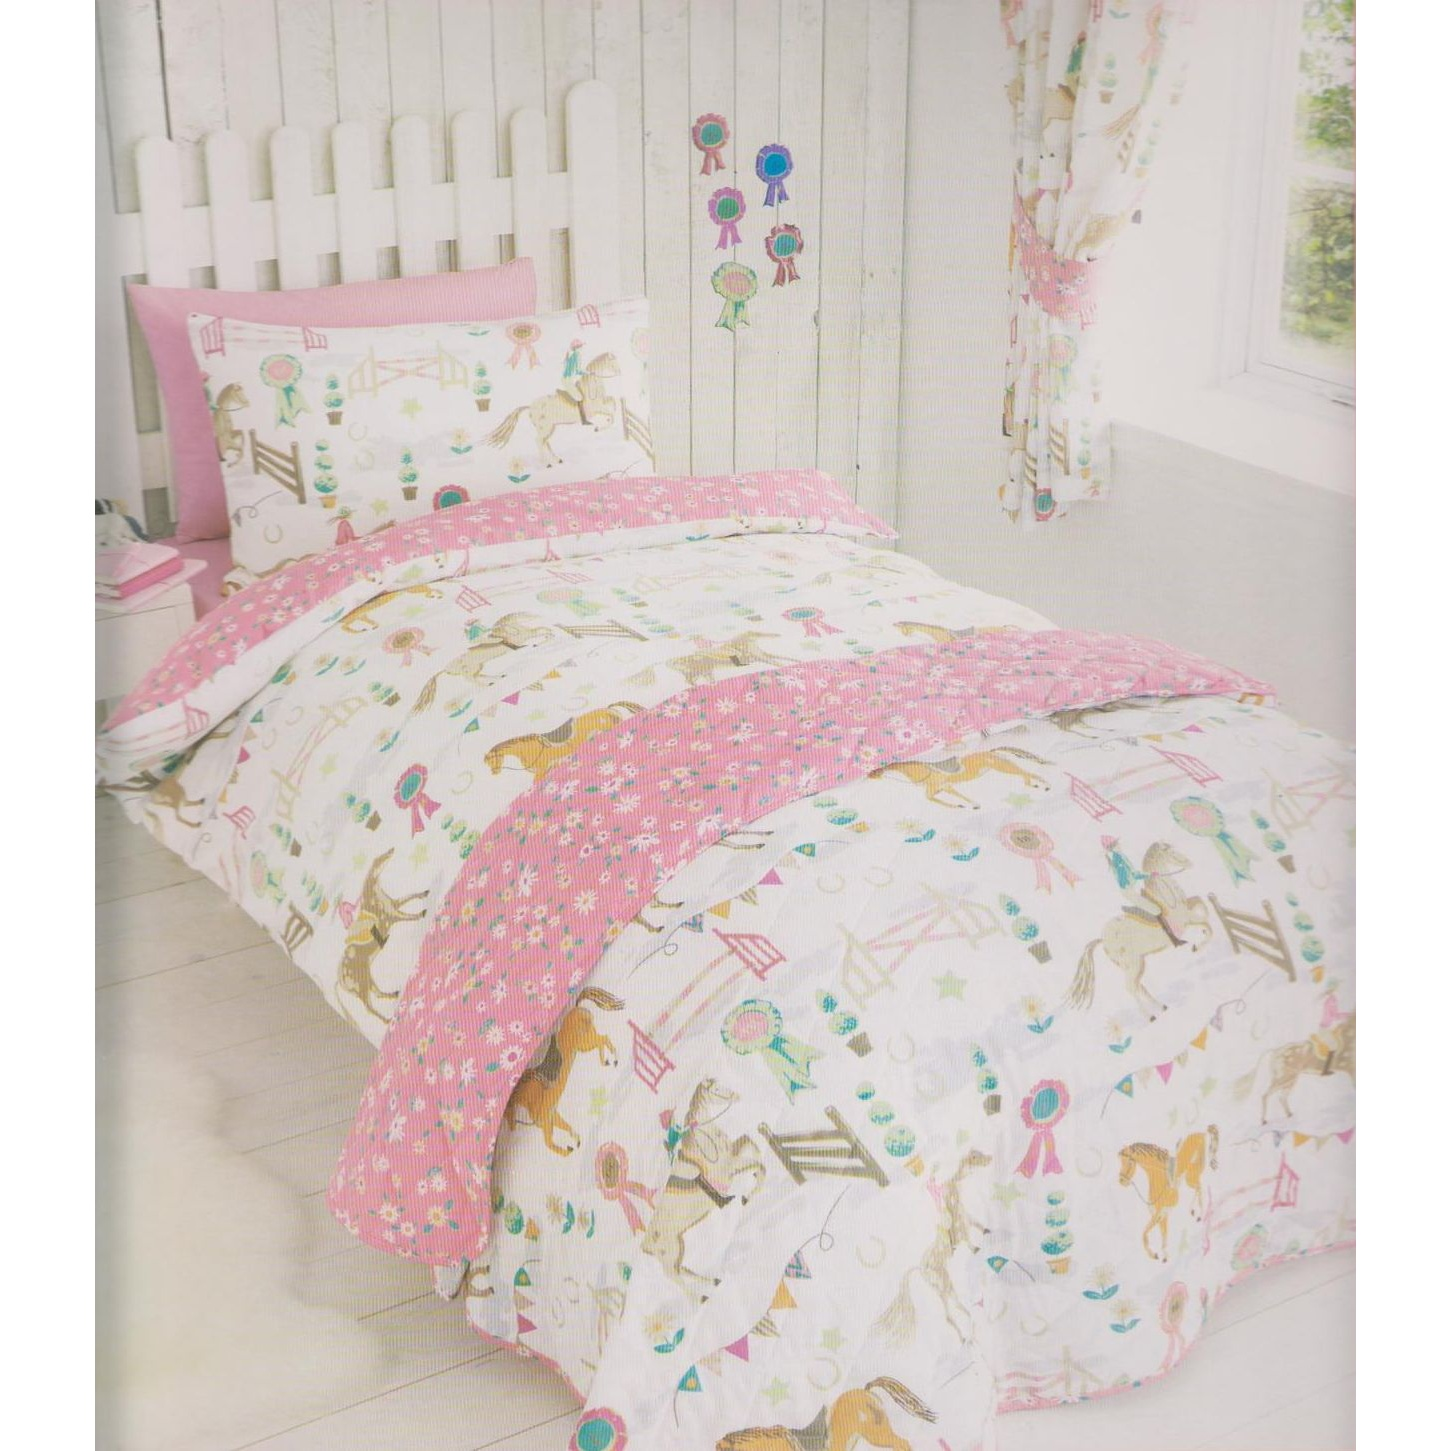 Girls Bedding Kids Club Girls Horse Show Quilt Cover Bedding Set Twin